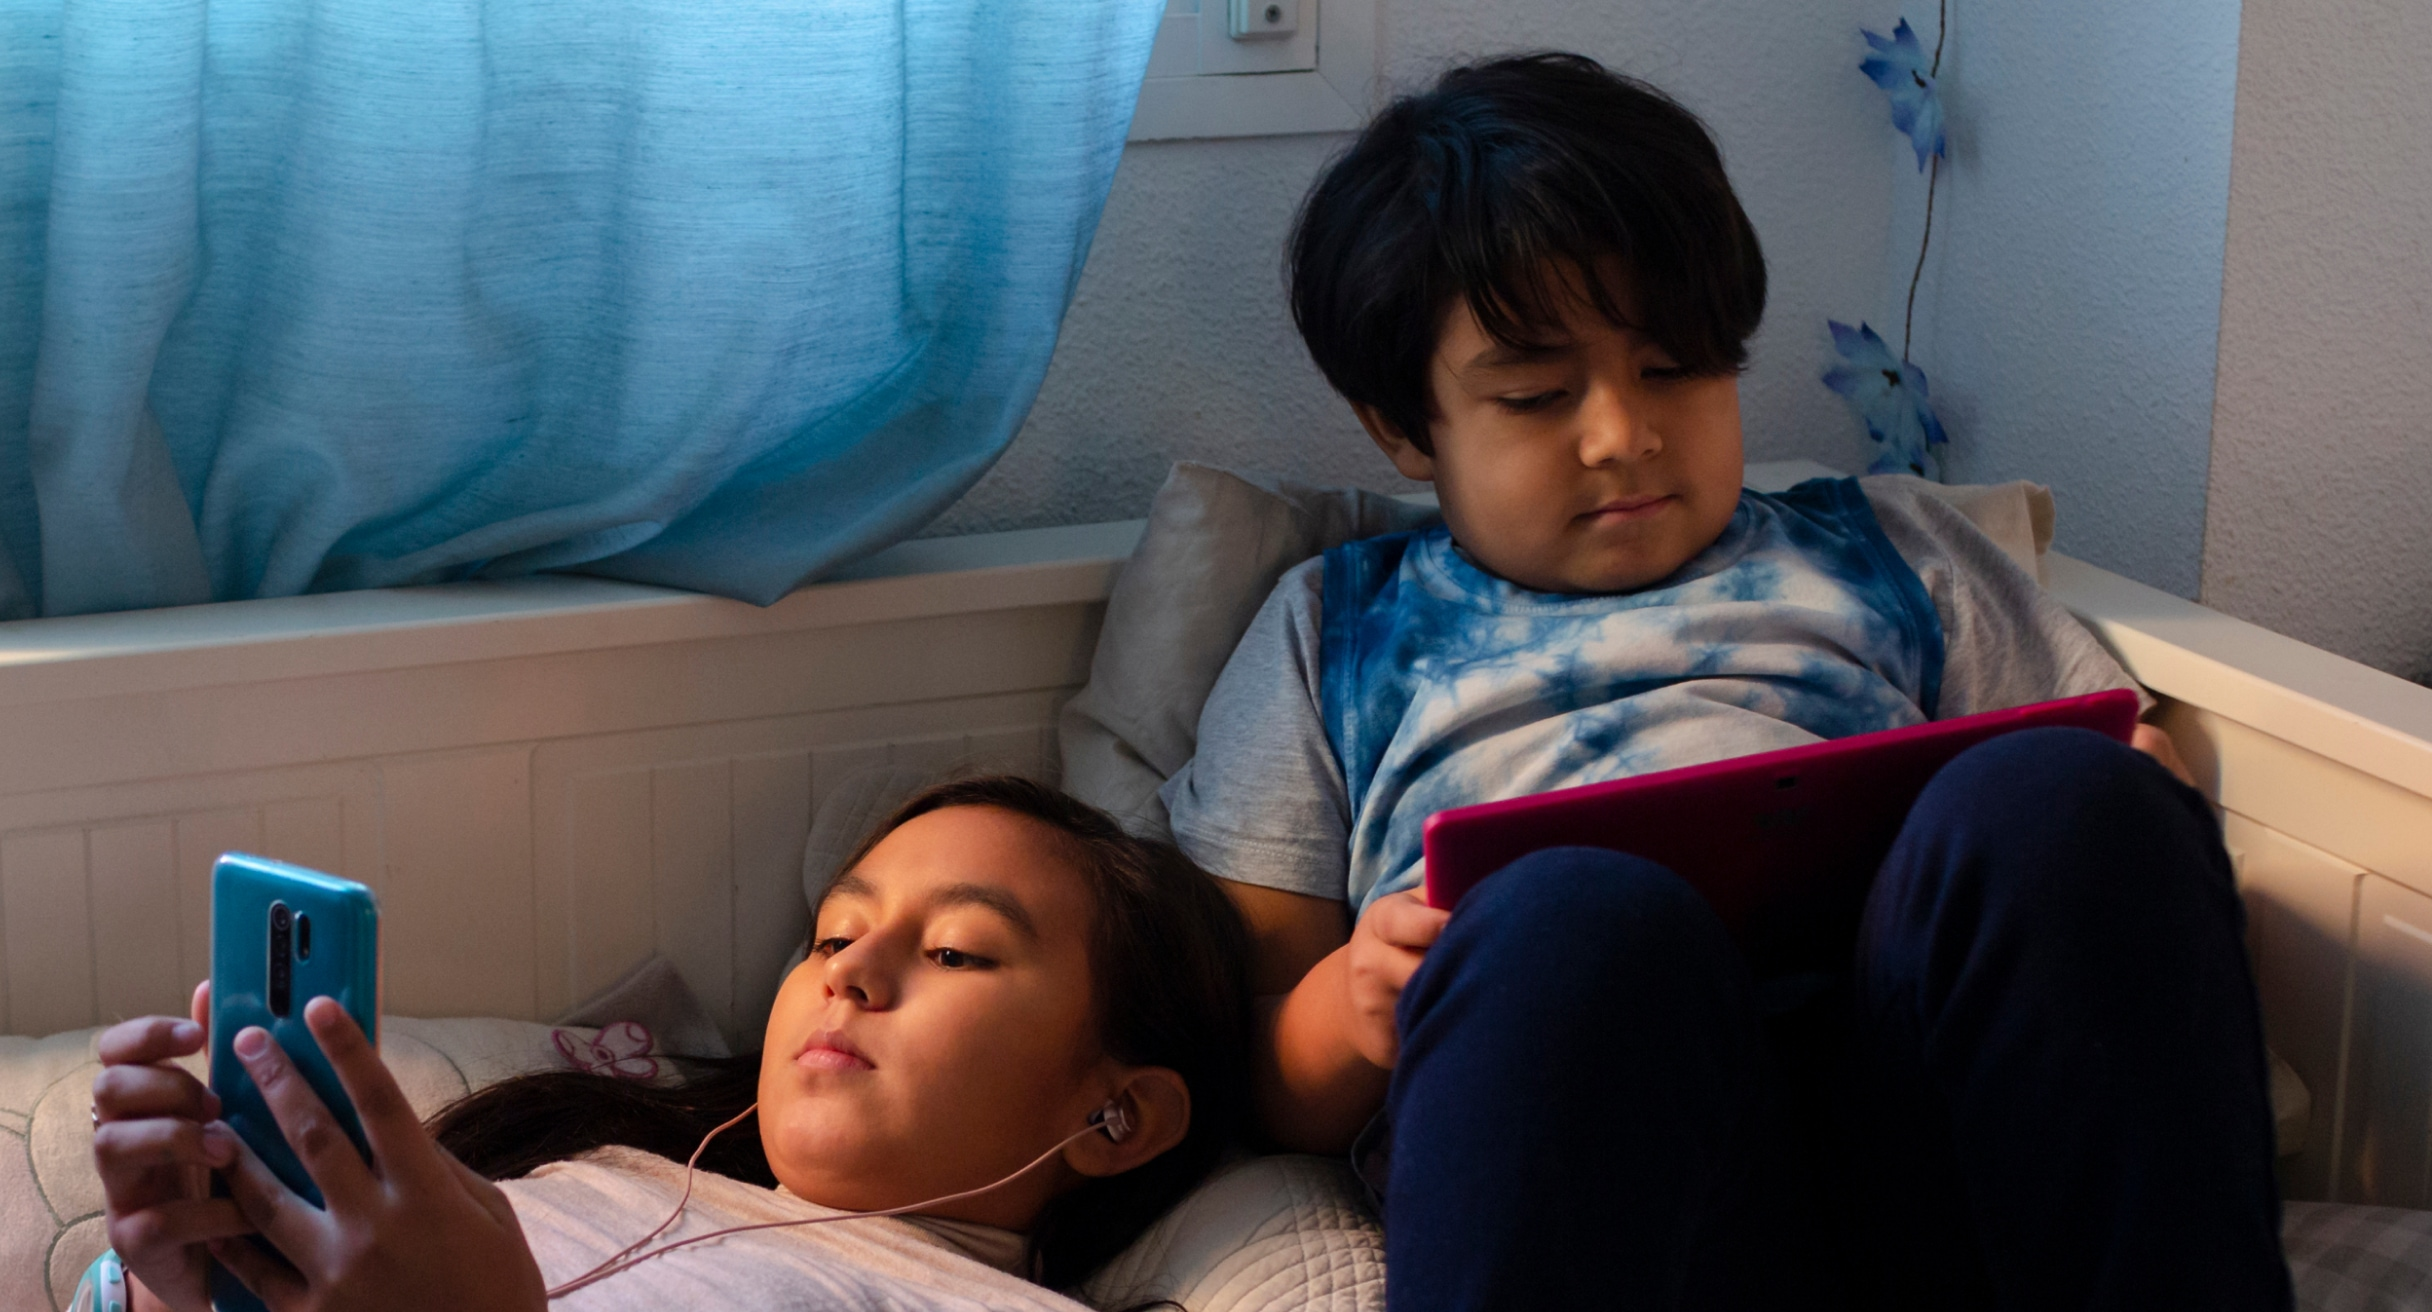 A Latinx girl and boy lounge on a bed with their mobile devices in hand